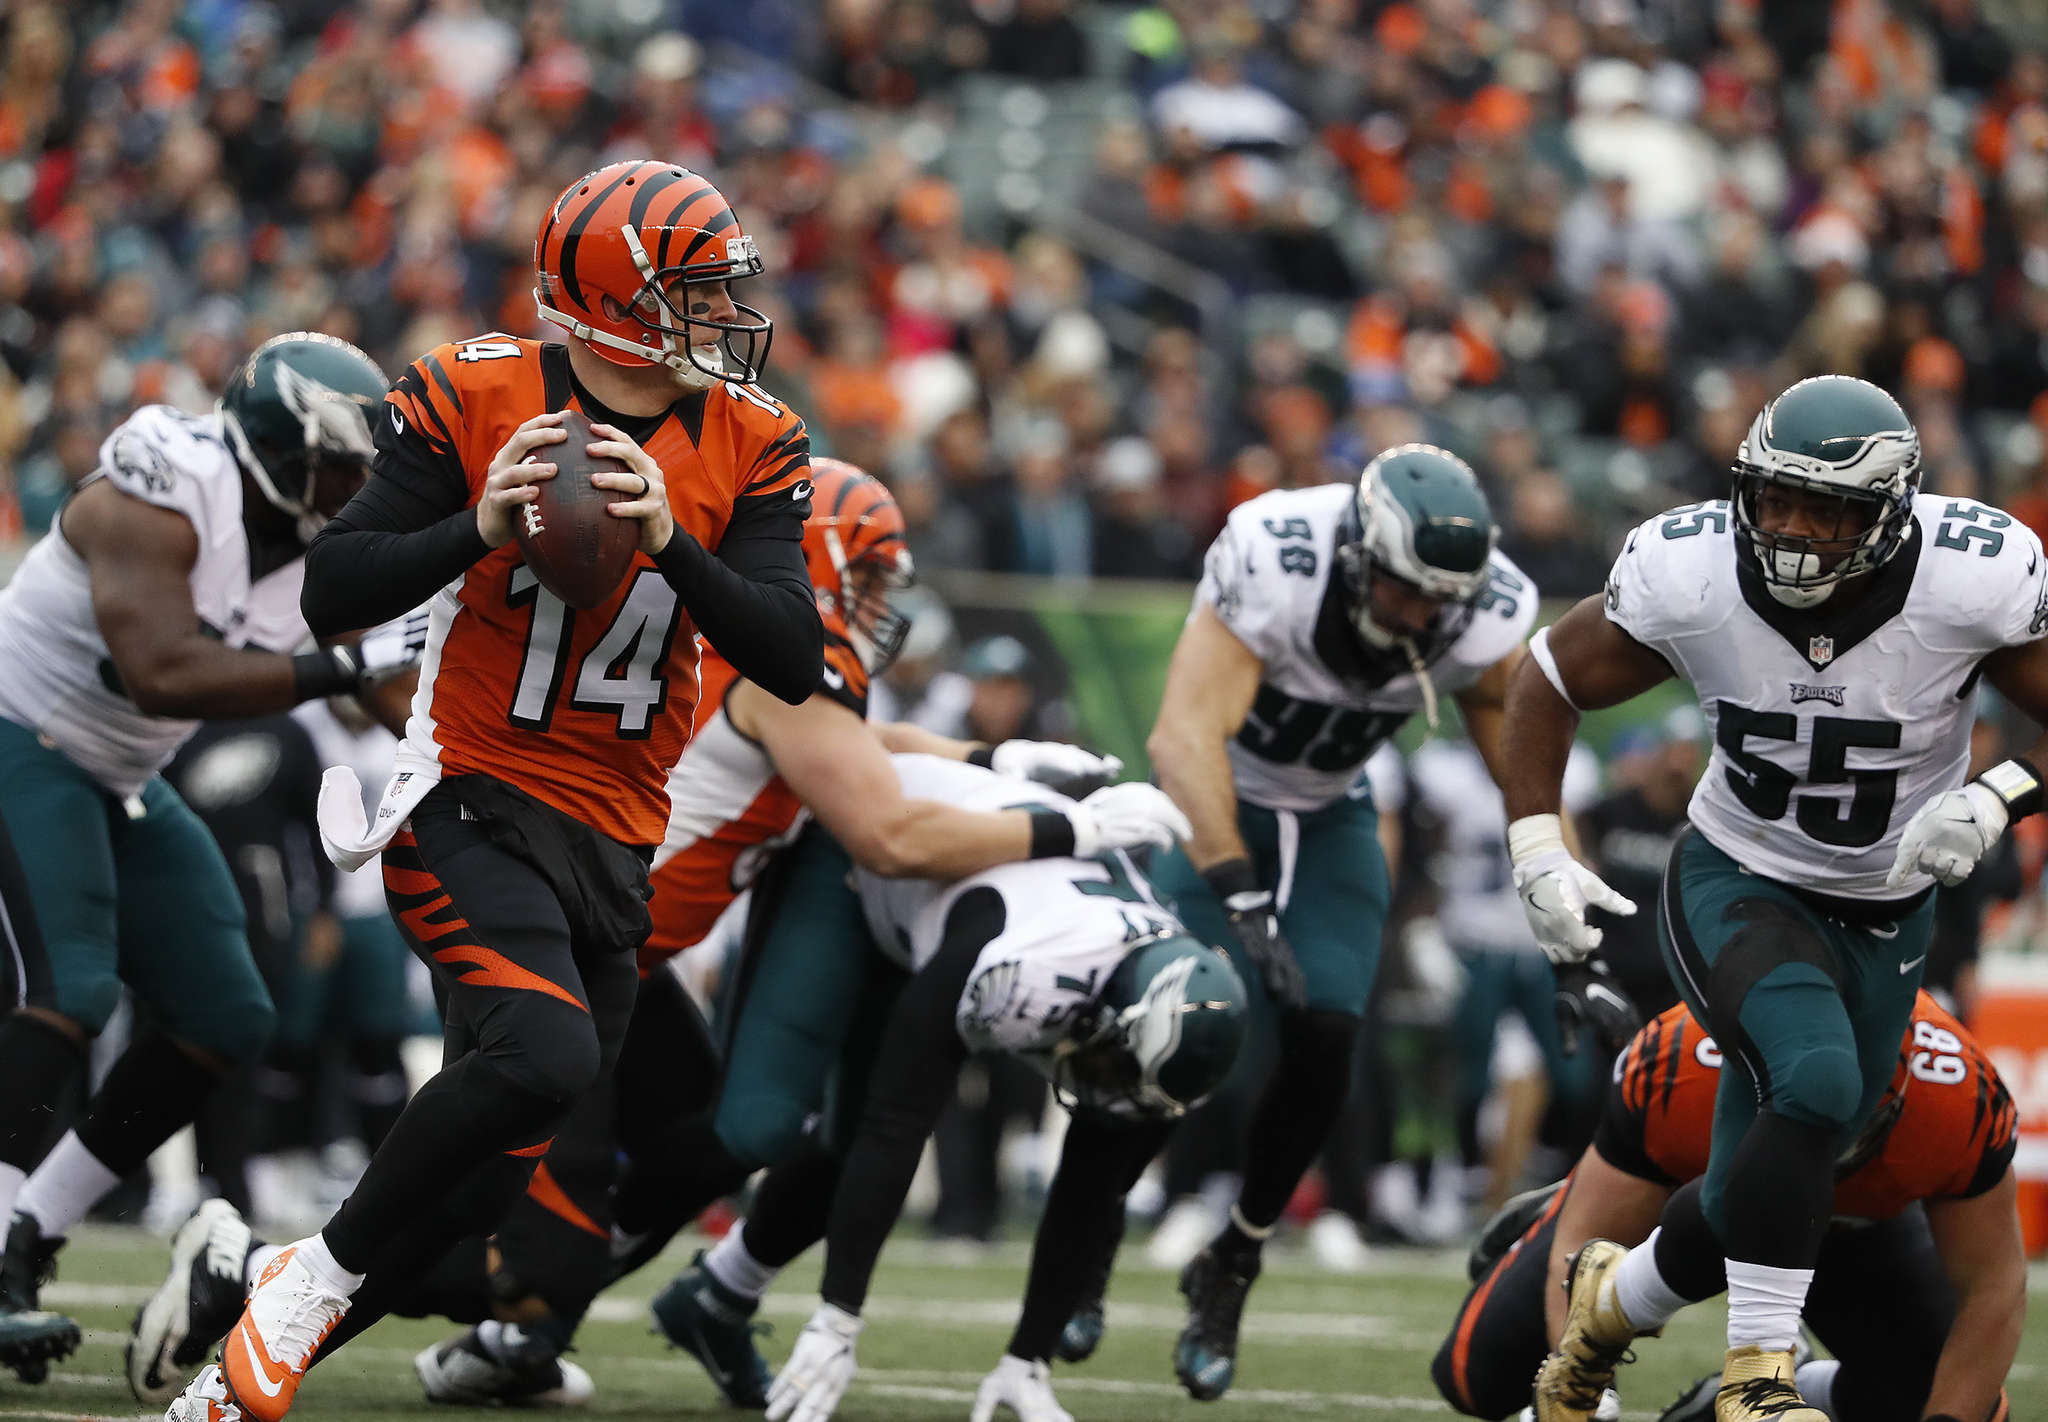 Andy Dalton evades the Eagles´ pass rush and looks downfield late in the second quarter. DAVID MAIALETTI / Staff Photographer